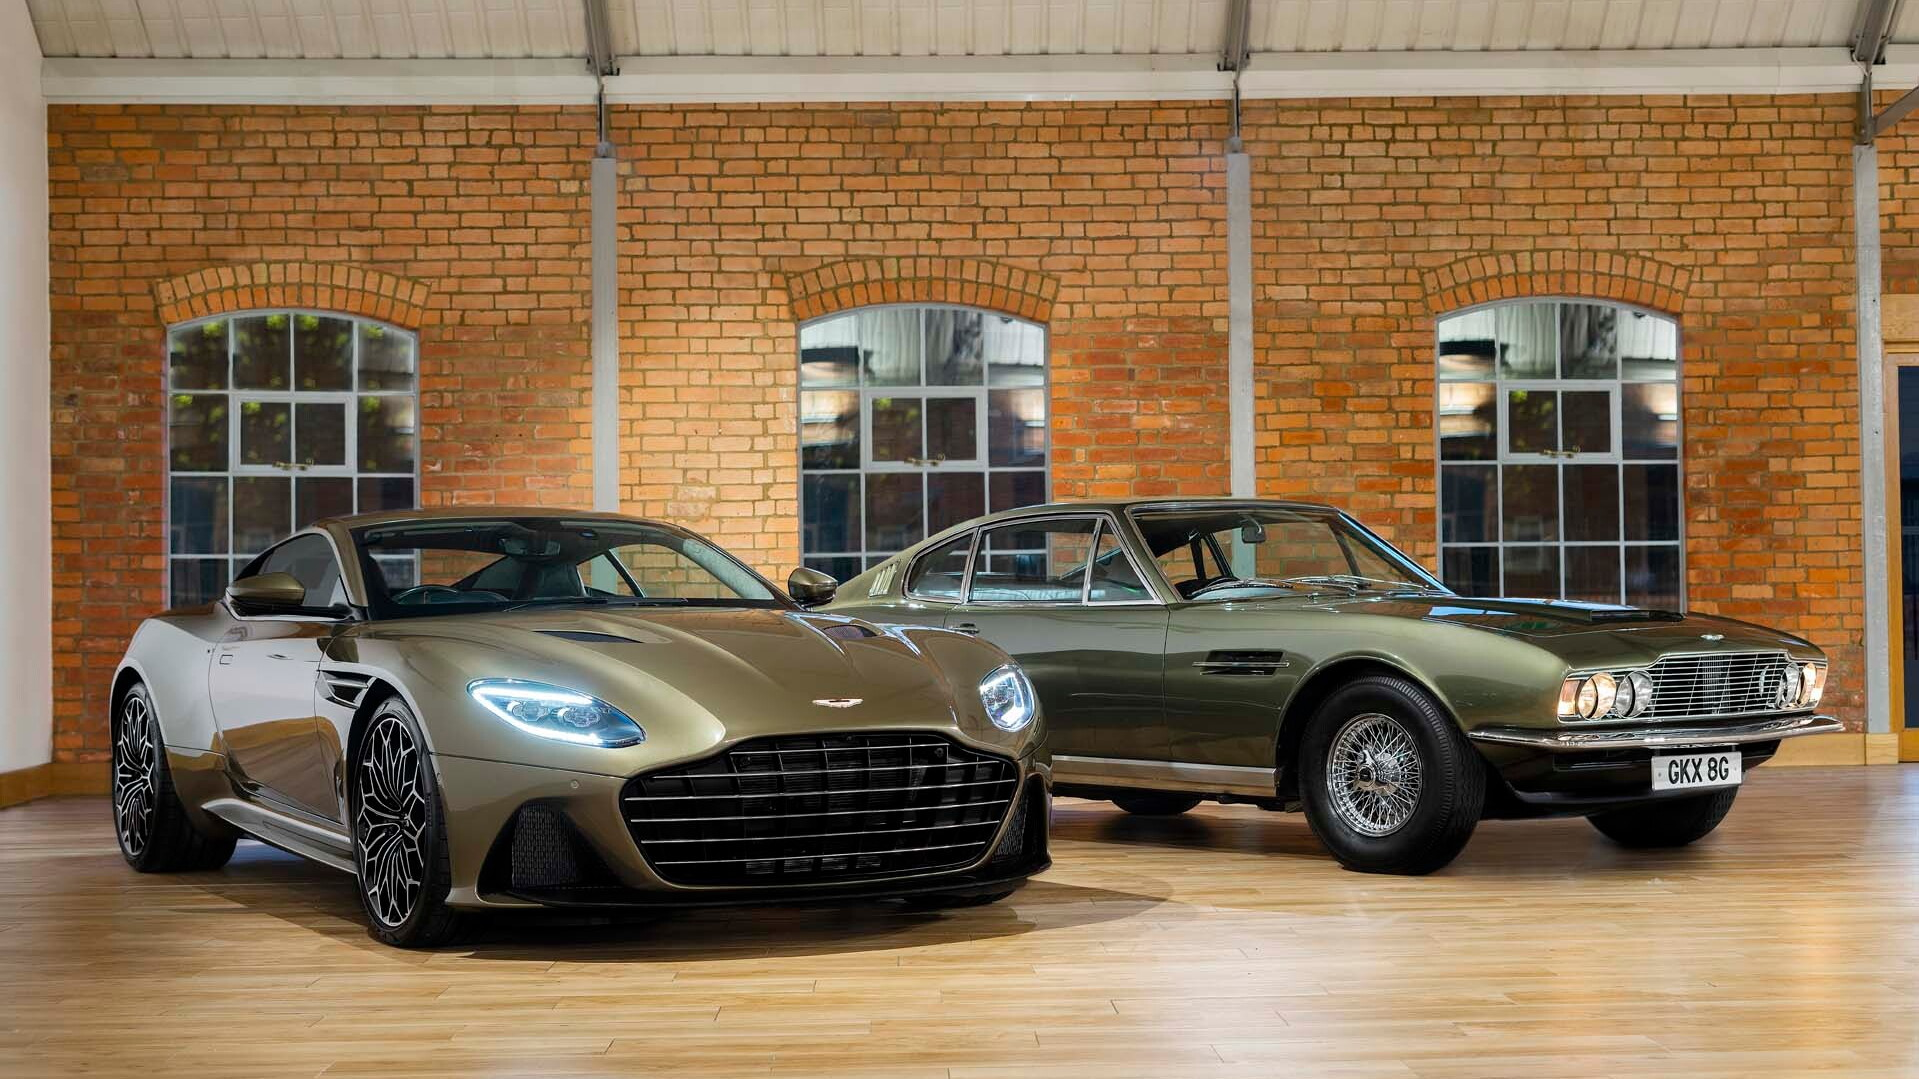 Latest Aston Martin DBS special edition pays tribute to James Bond